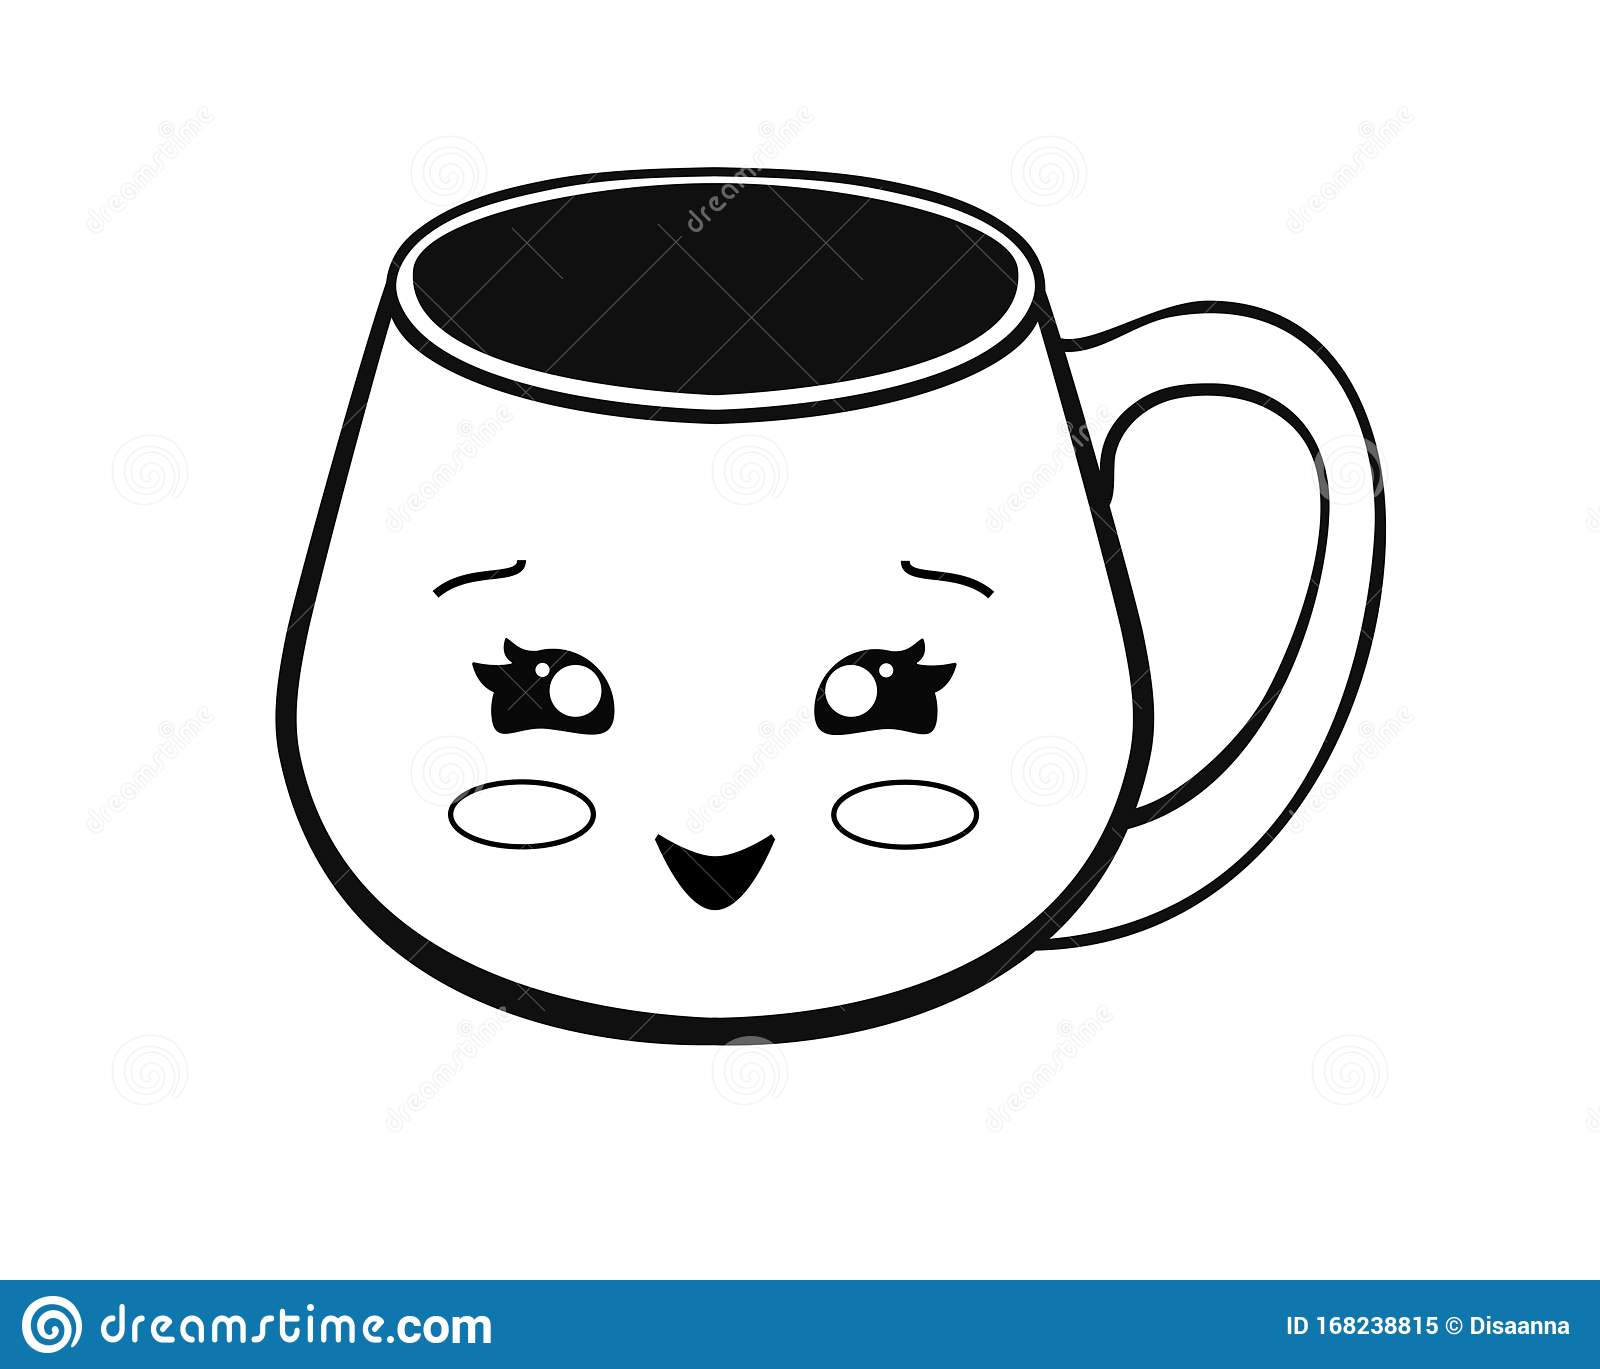 Cup With Kawaii Face Cute Cup Emoticon Vector Linear Picture For Coloring A Cute Mug Outline Hand Drawing Stock Vector Illustration Of Beverage Emoji 168238815